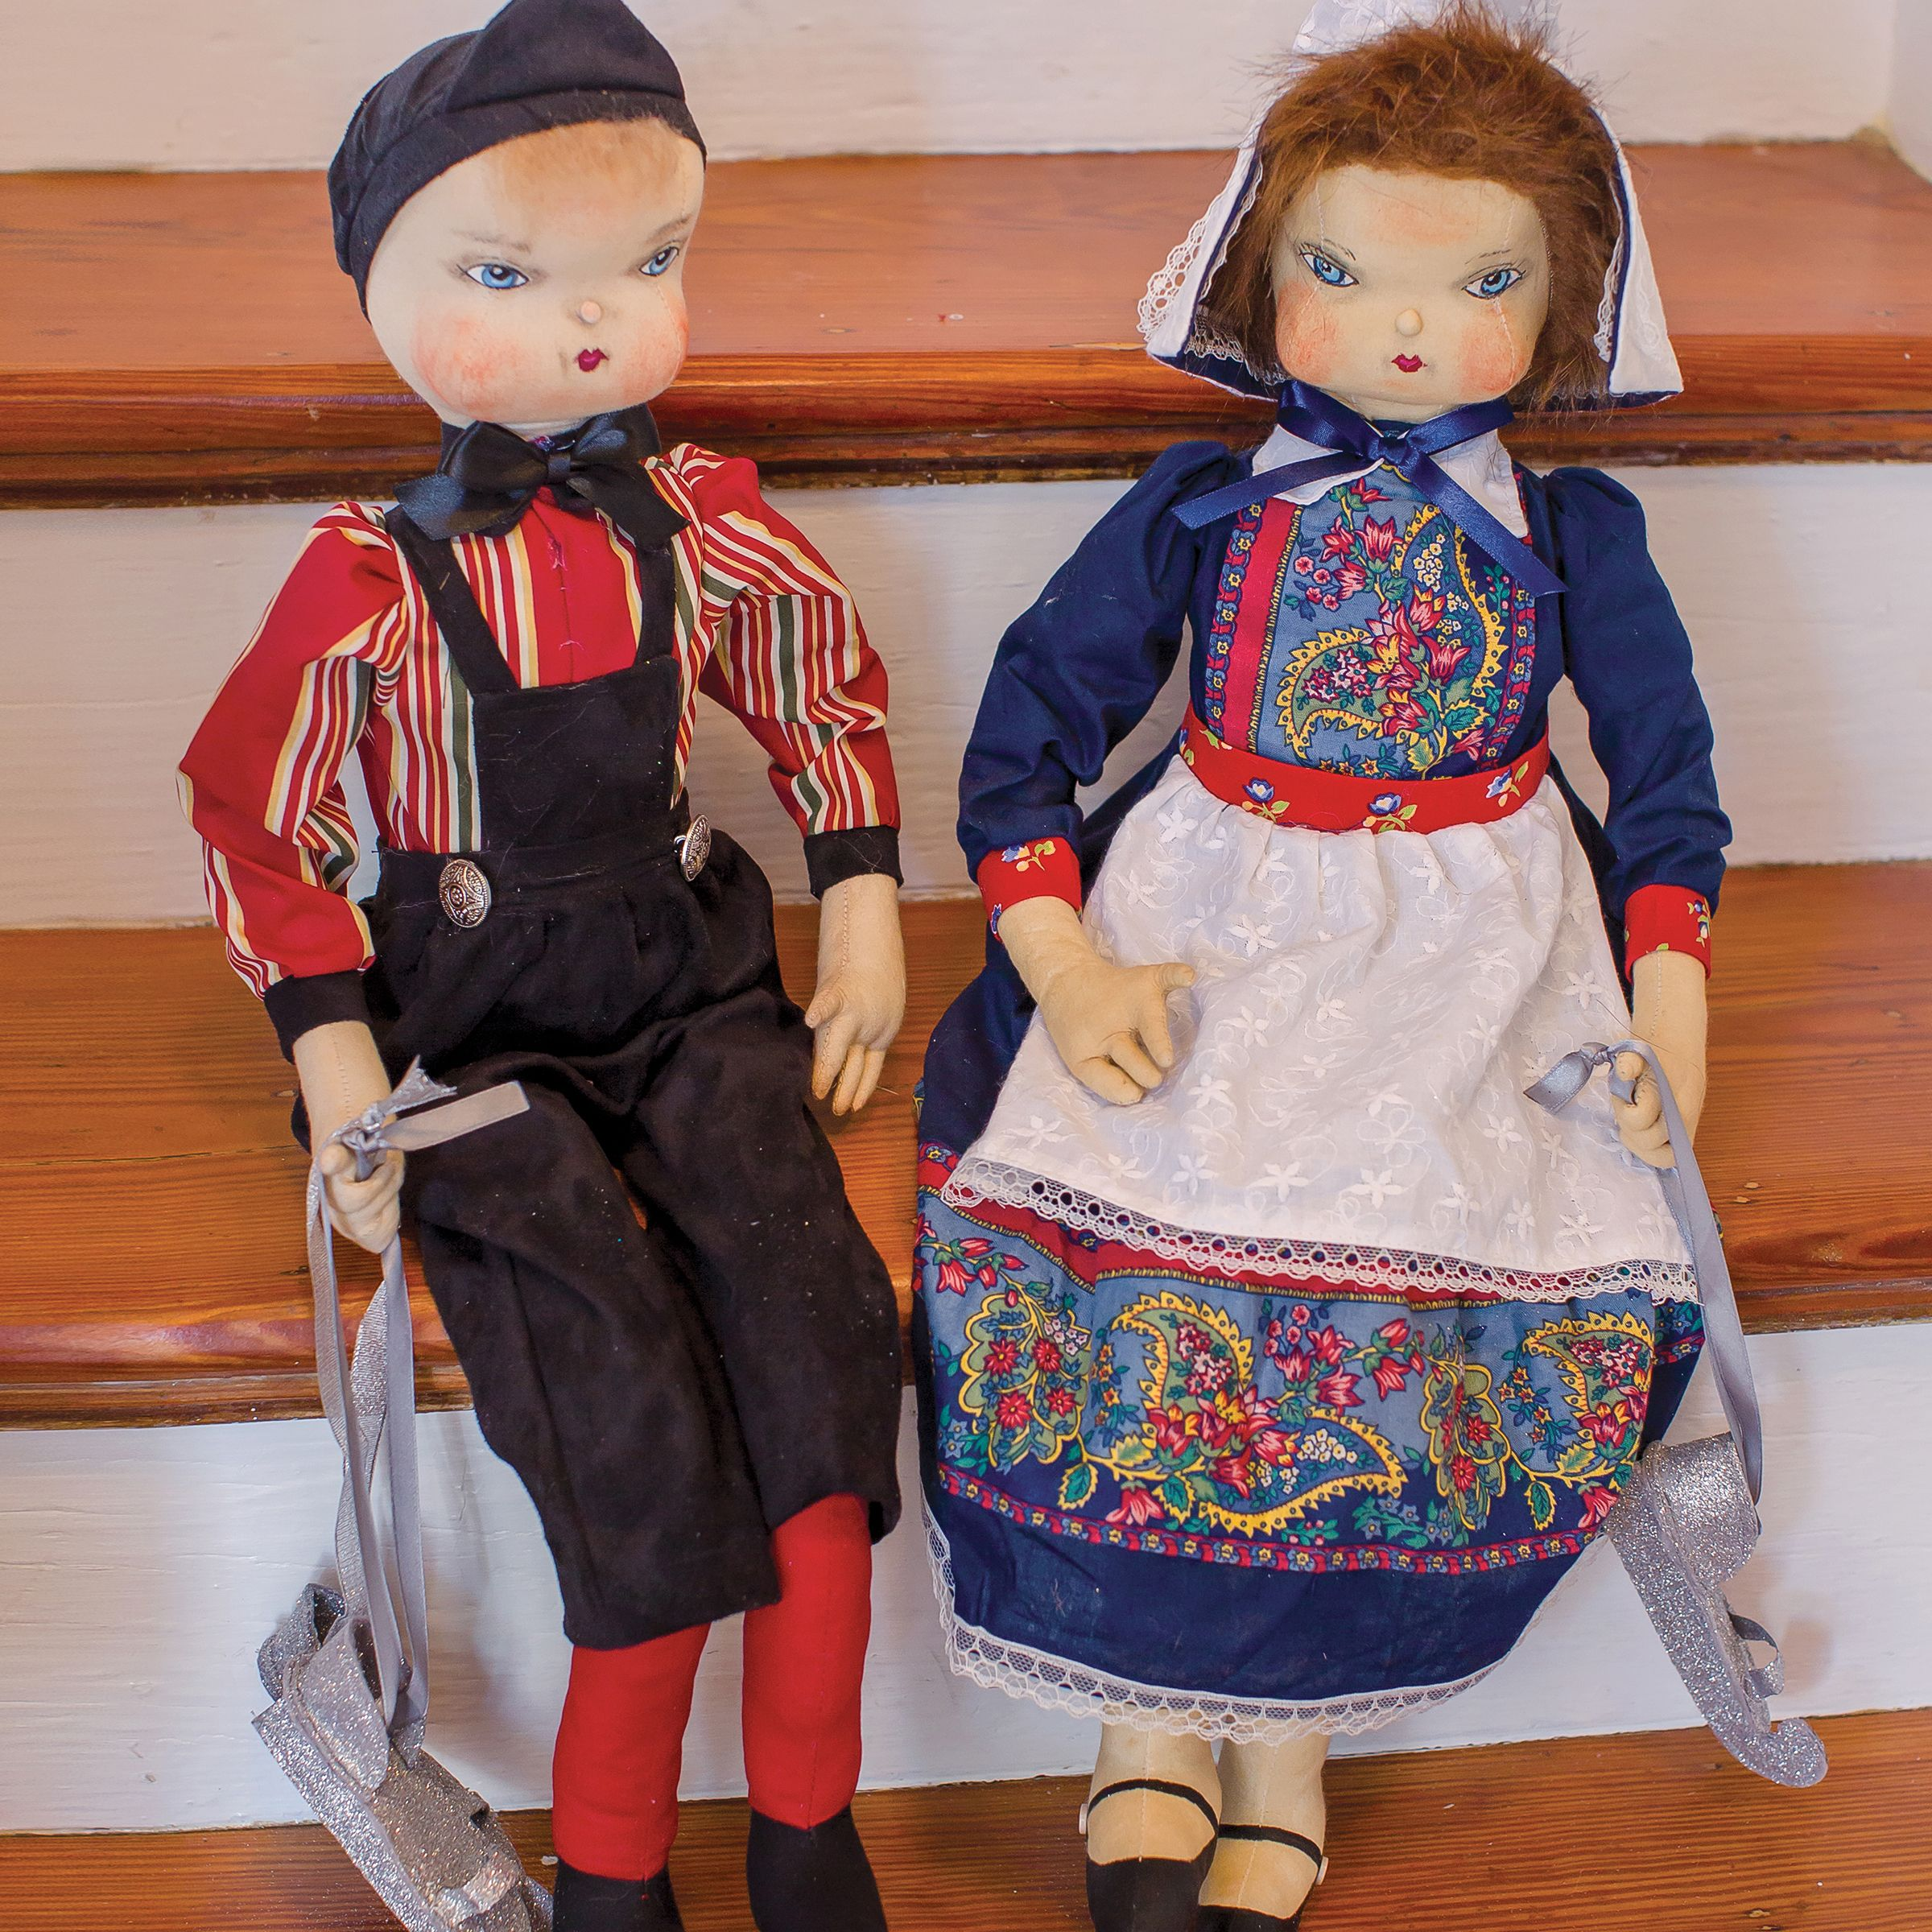 Hans Brinker Joe Spencer Gathered Traditions Art Doll